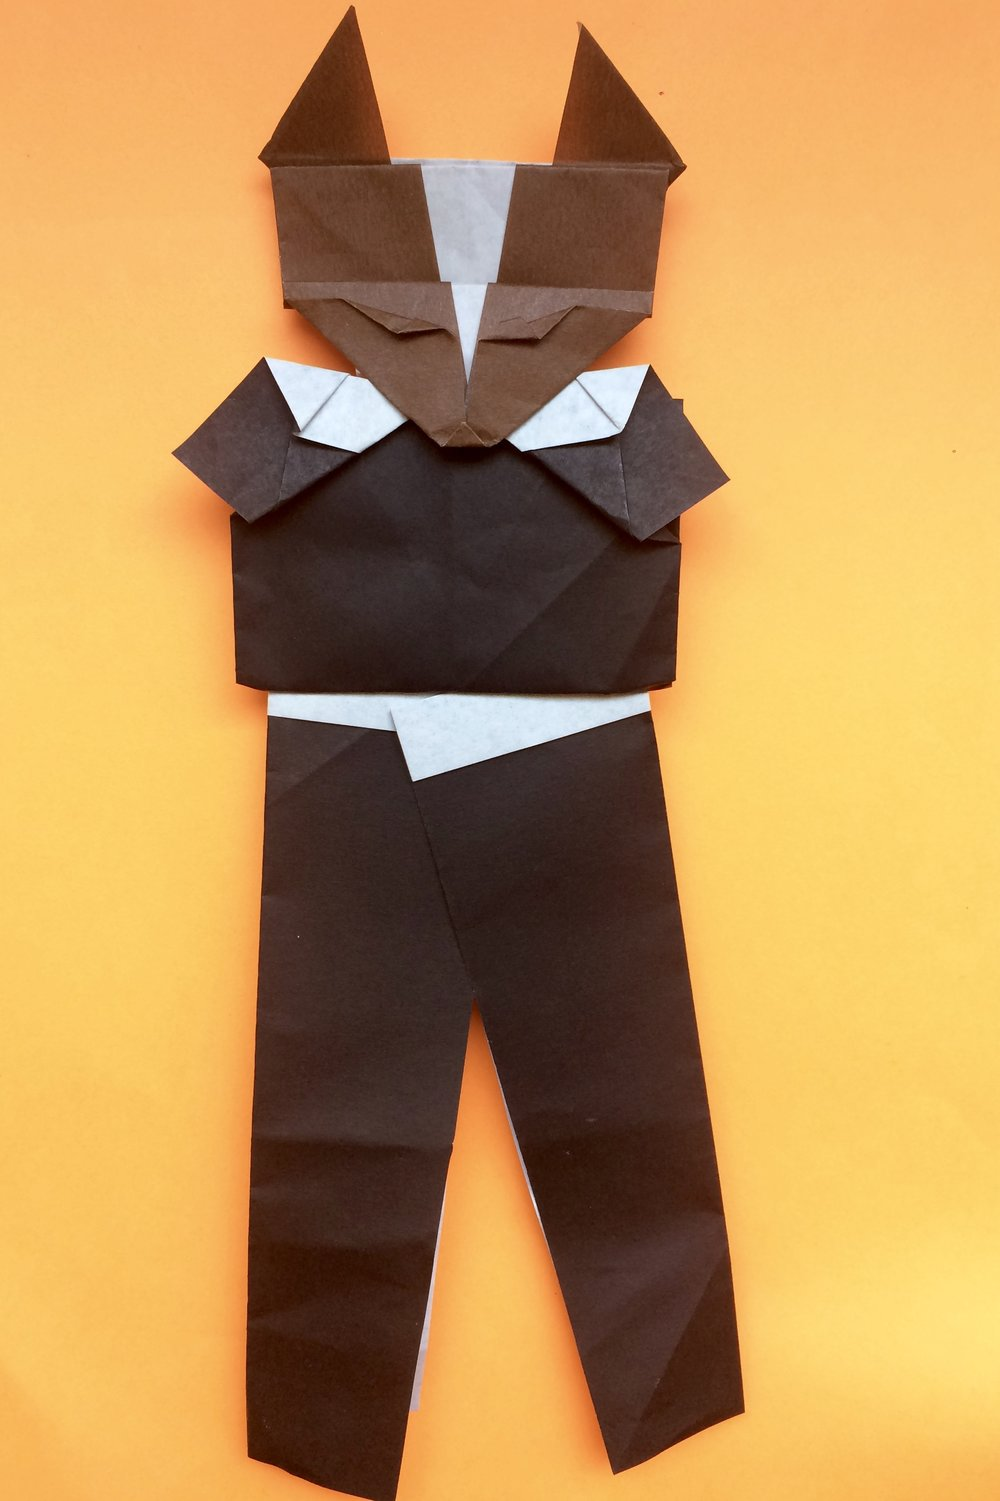 Origami Fox in his dancing suit!